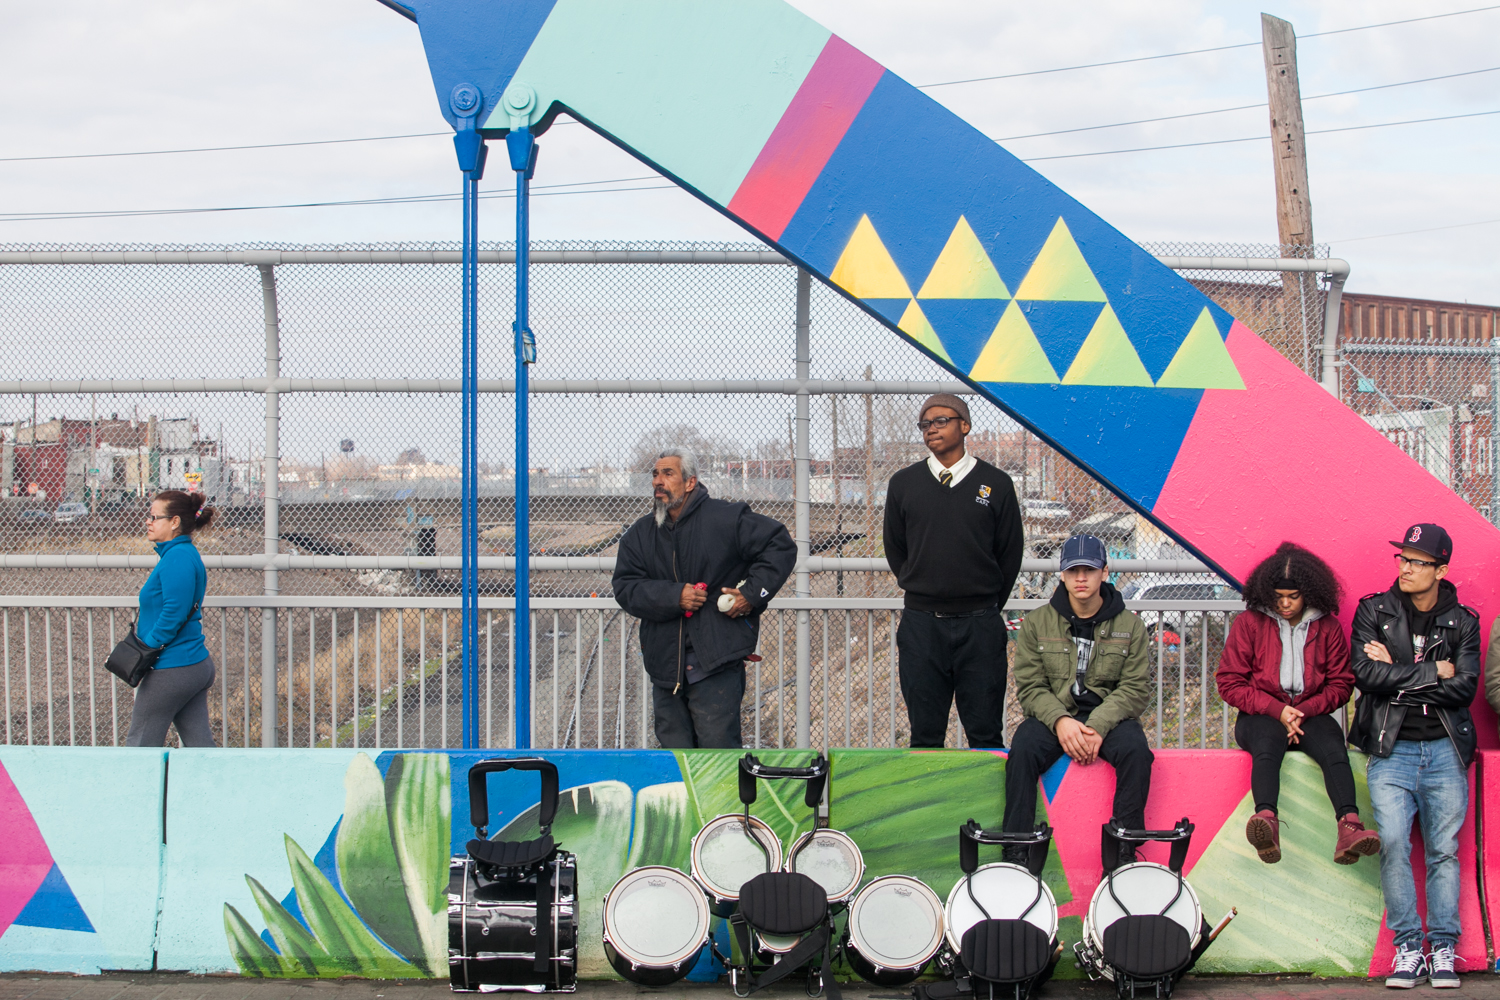 Community members relax on the B Street Bridge during a dedication ceremony for the recently completed mural on the bridge. (Brad Larrison for WHYY)